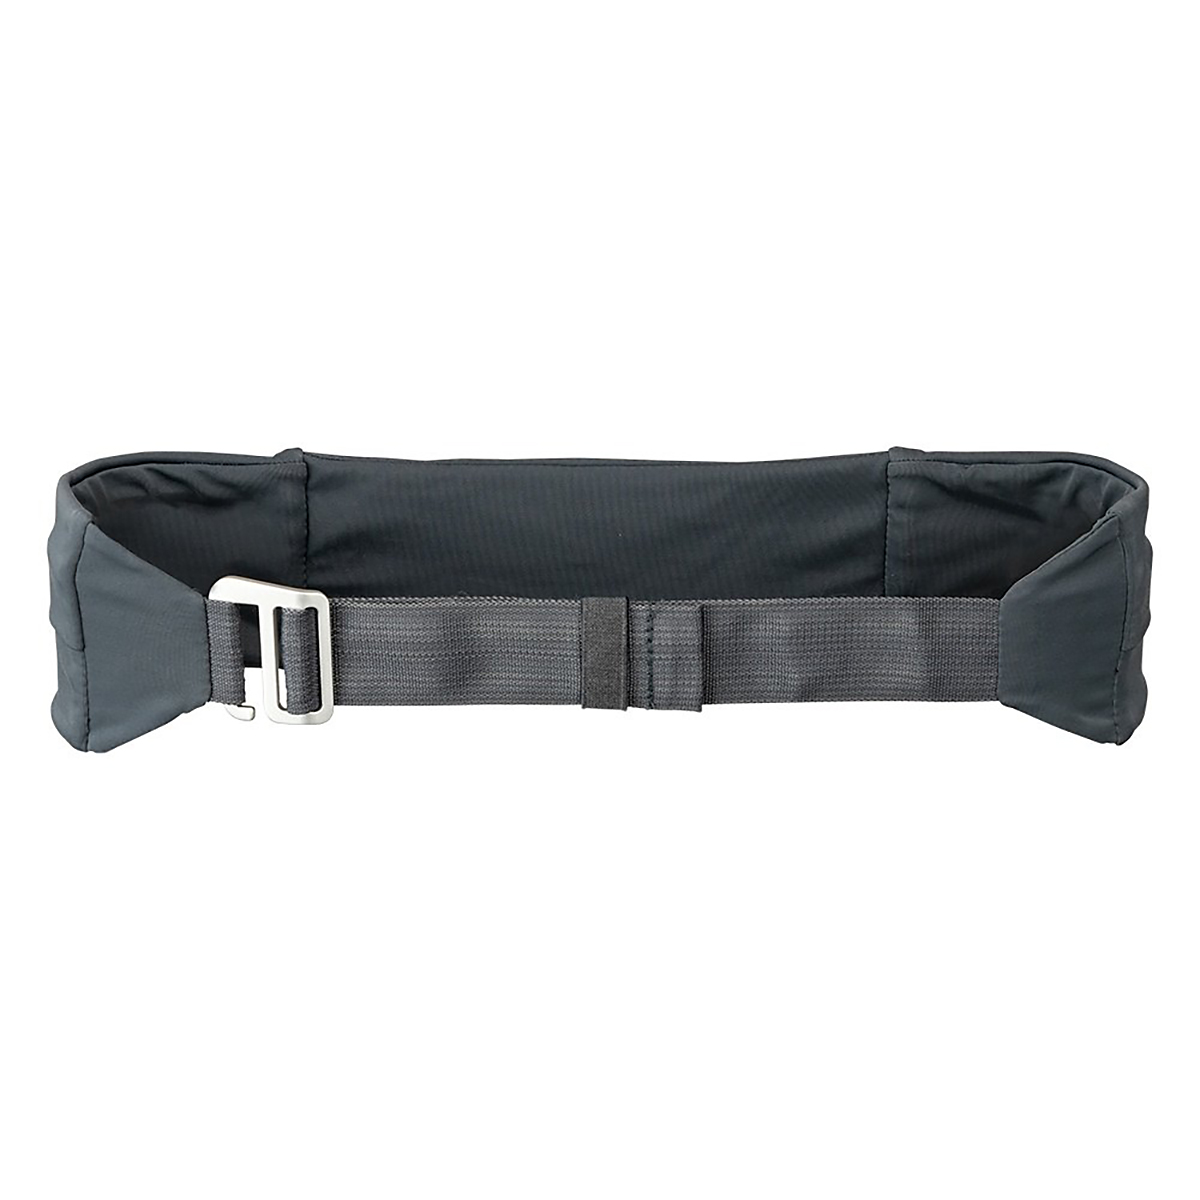 Nathan Adjustable Fit Zipster - Color: Grey, Grey, large, image 2